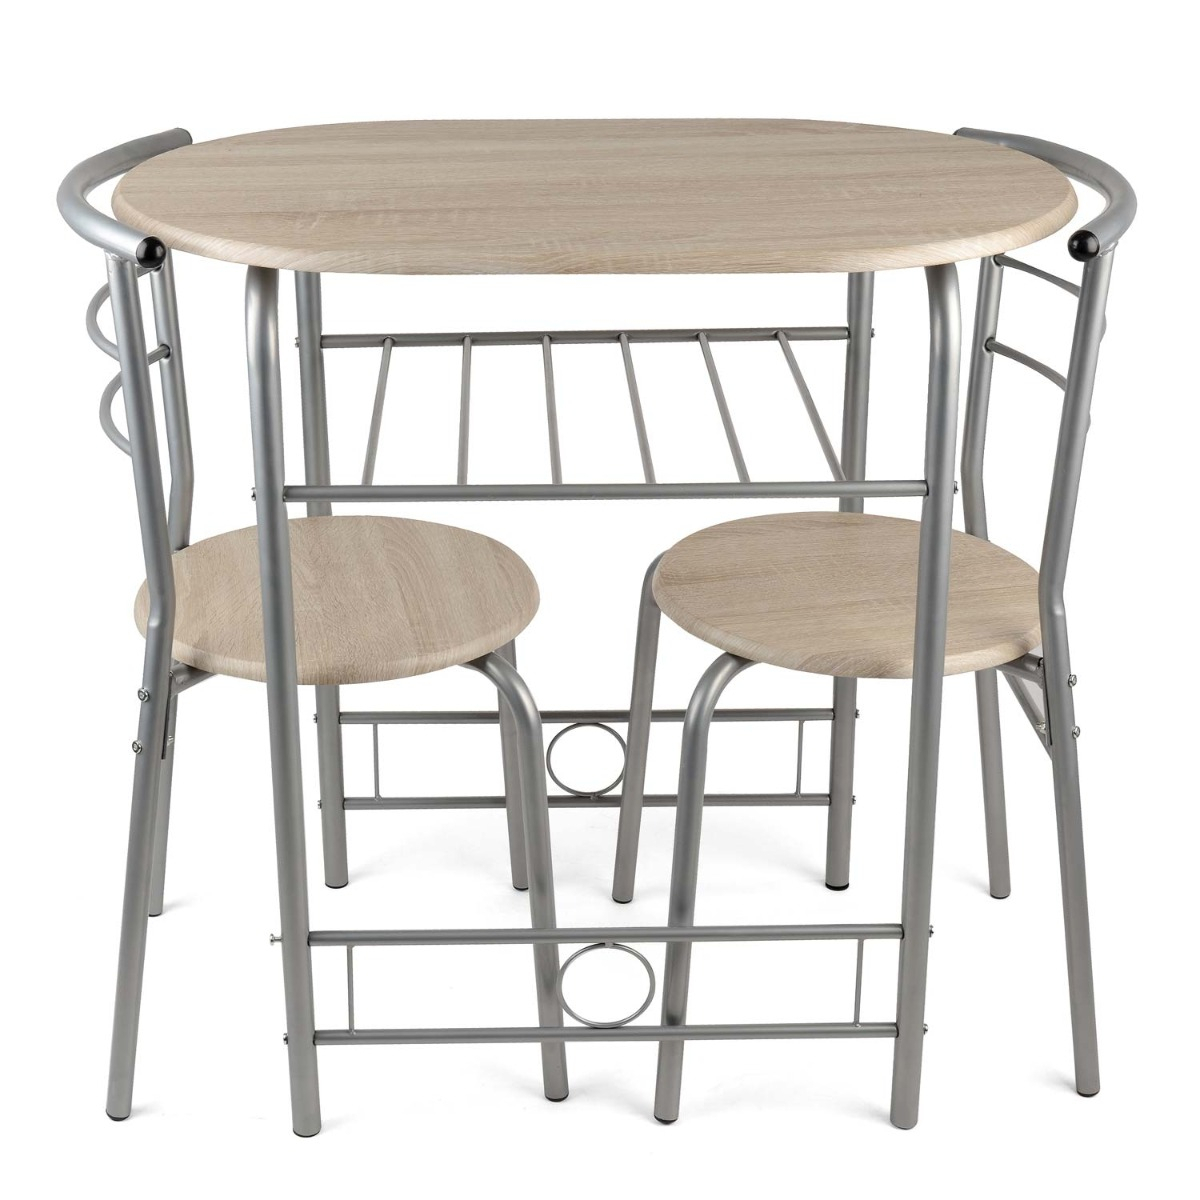 Details About 3 Piece Dining Set Breakfast Bar Kitchen Table Chairs Christow Furniture With Regard To Most Recent 3 Piece Breakfast Dining Sets (View 12 of 20)